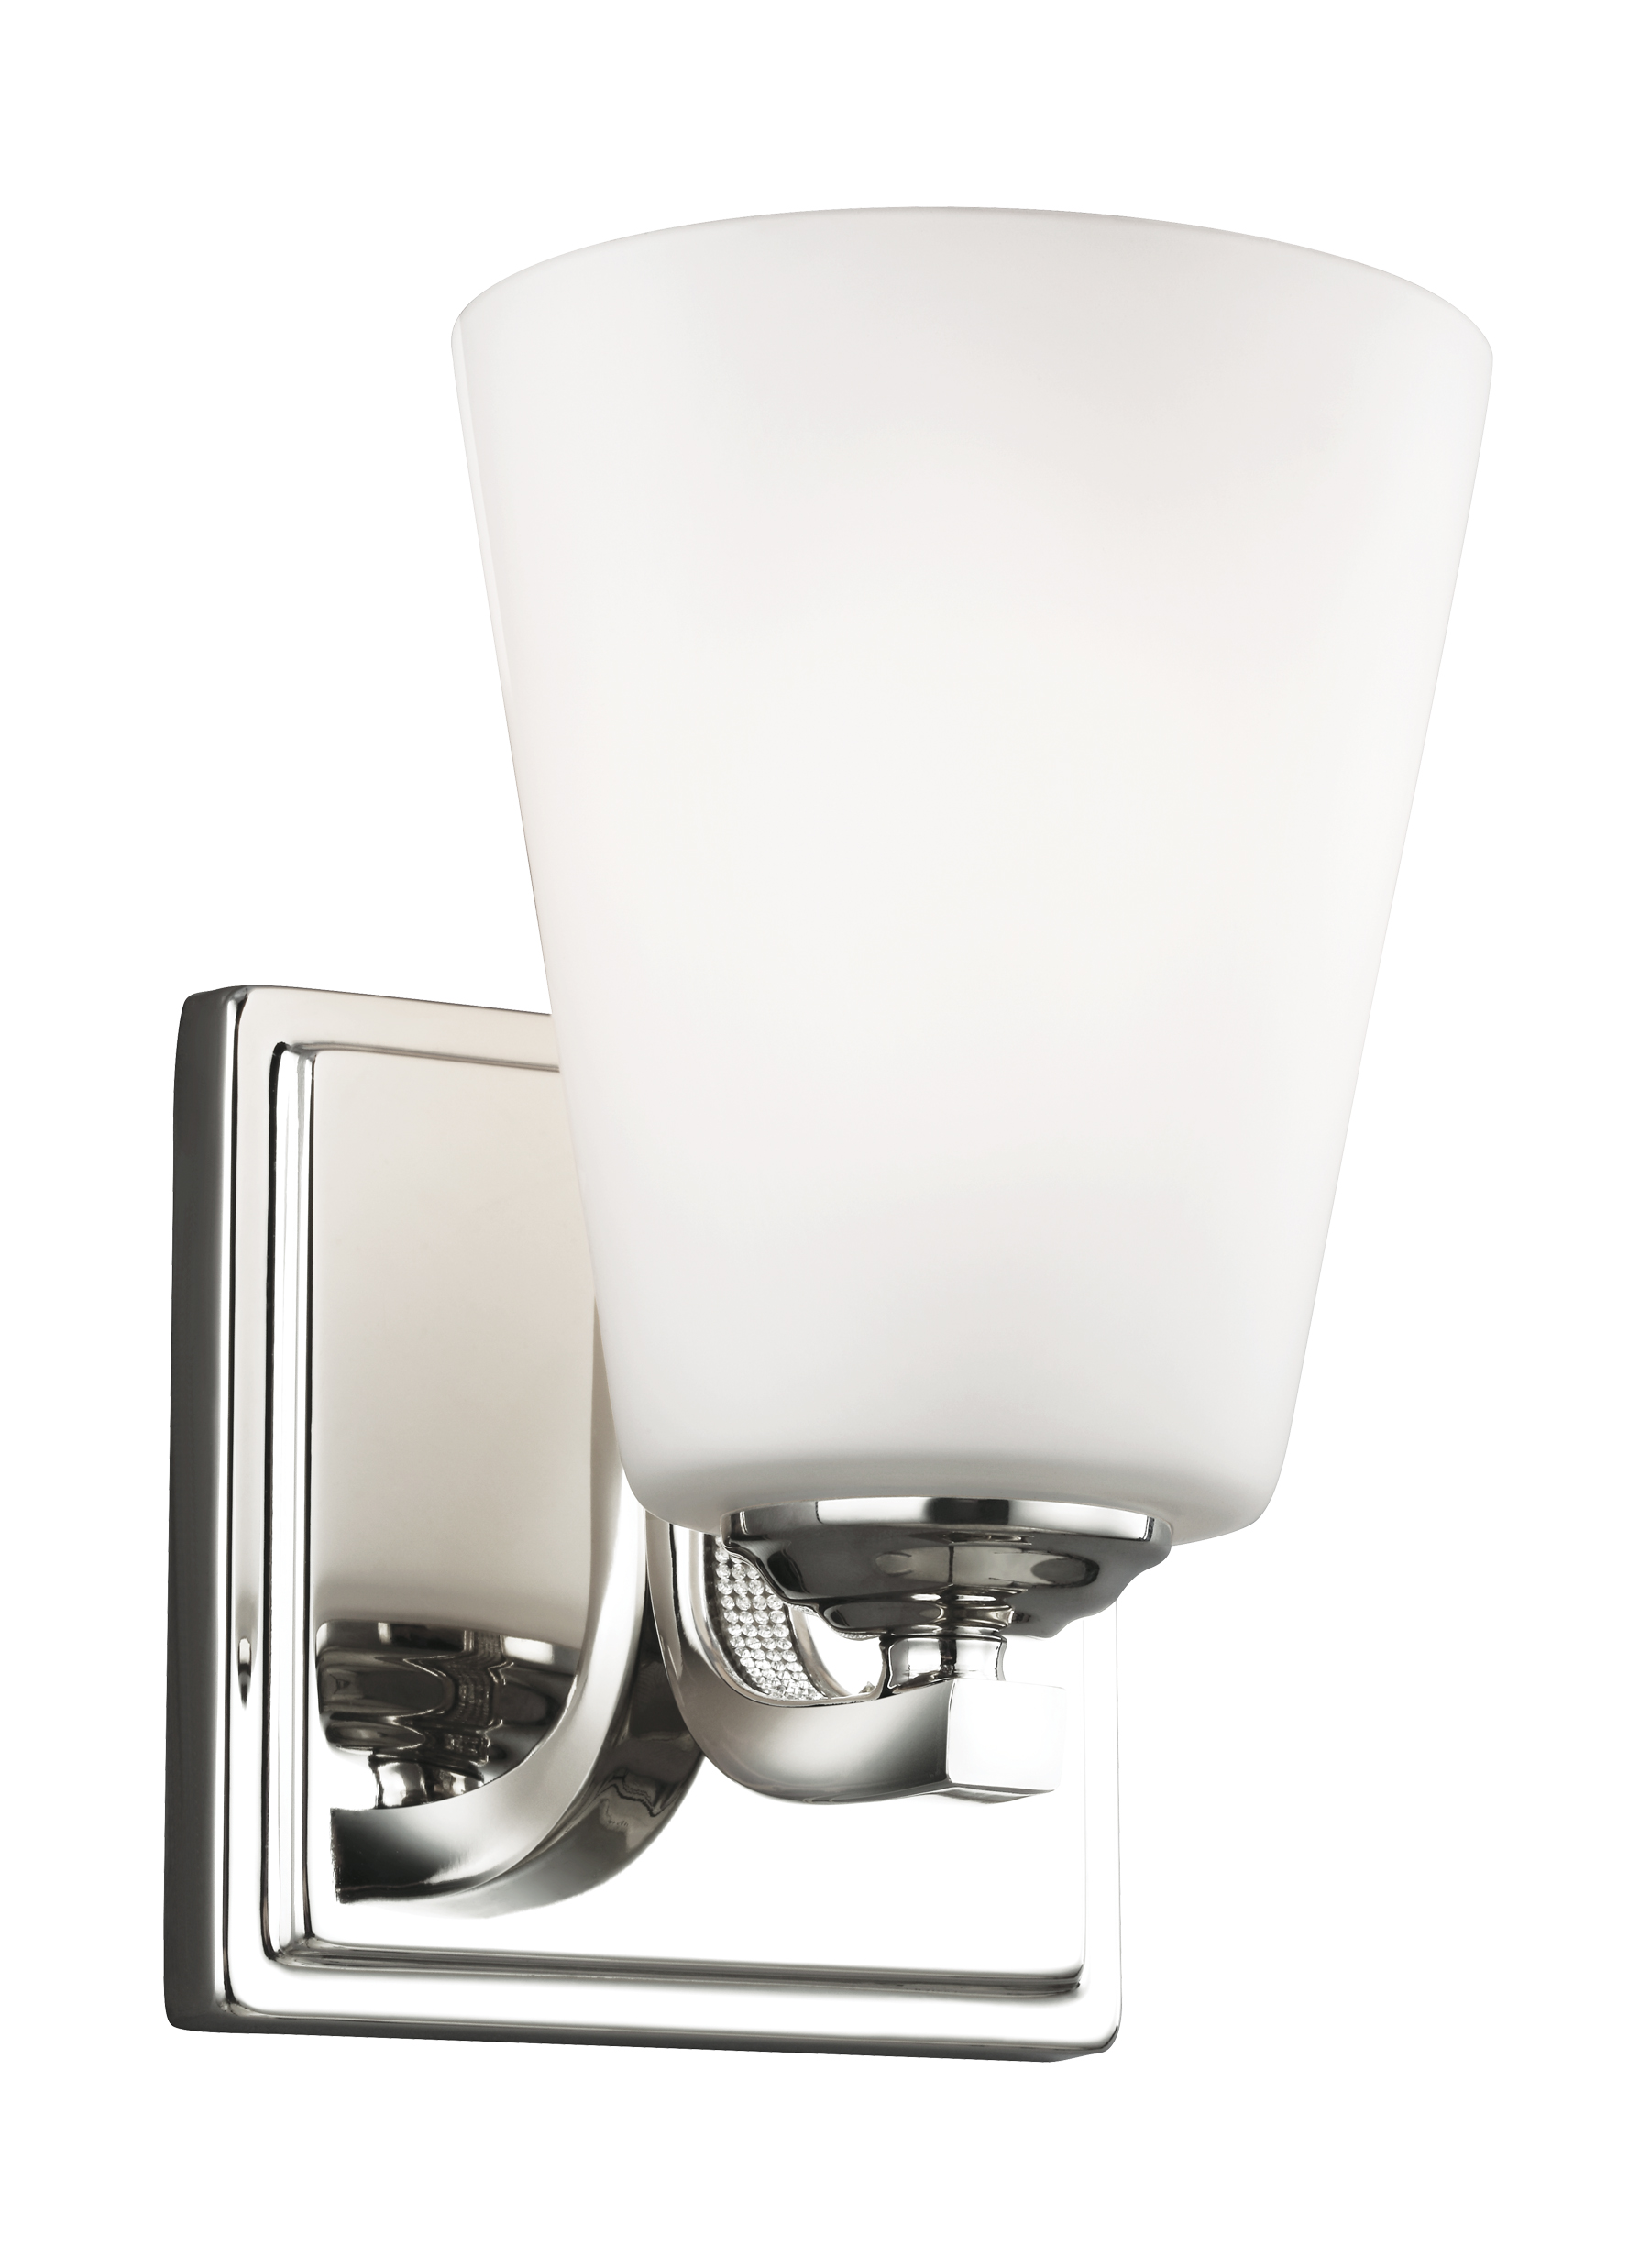 polished light sconce nickel vanity como single bathroom